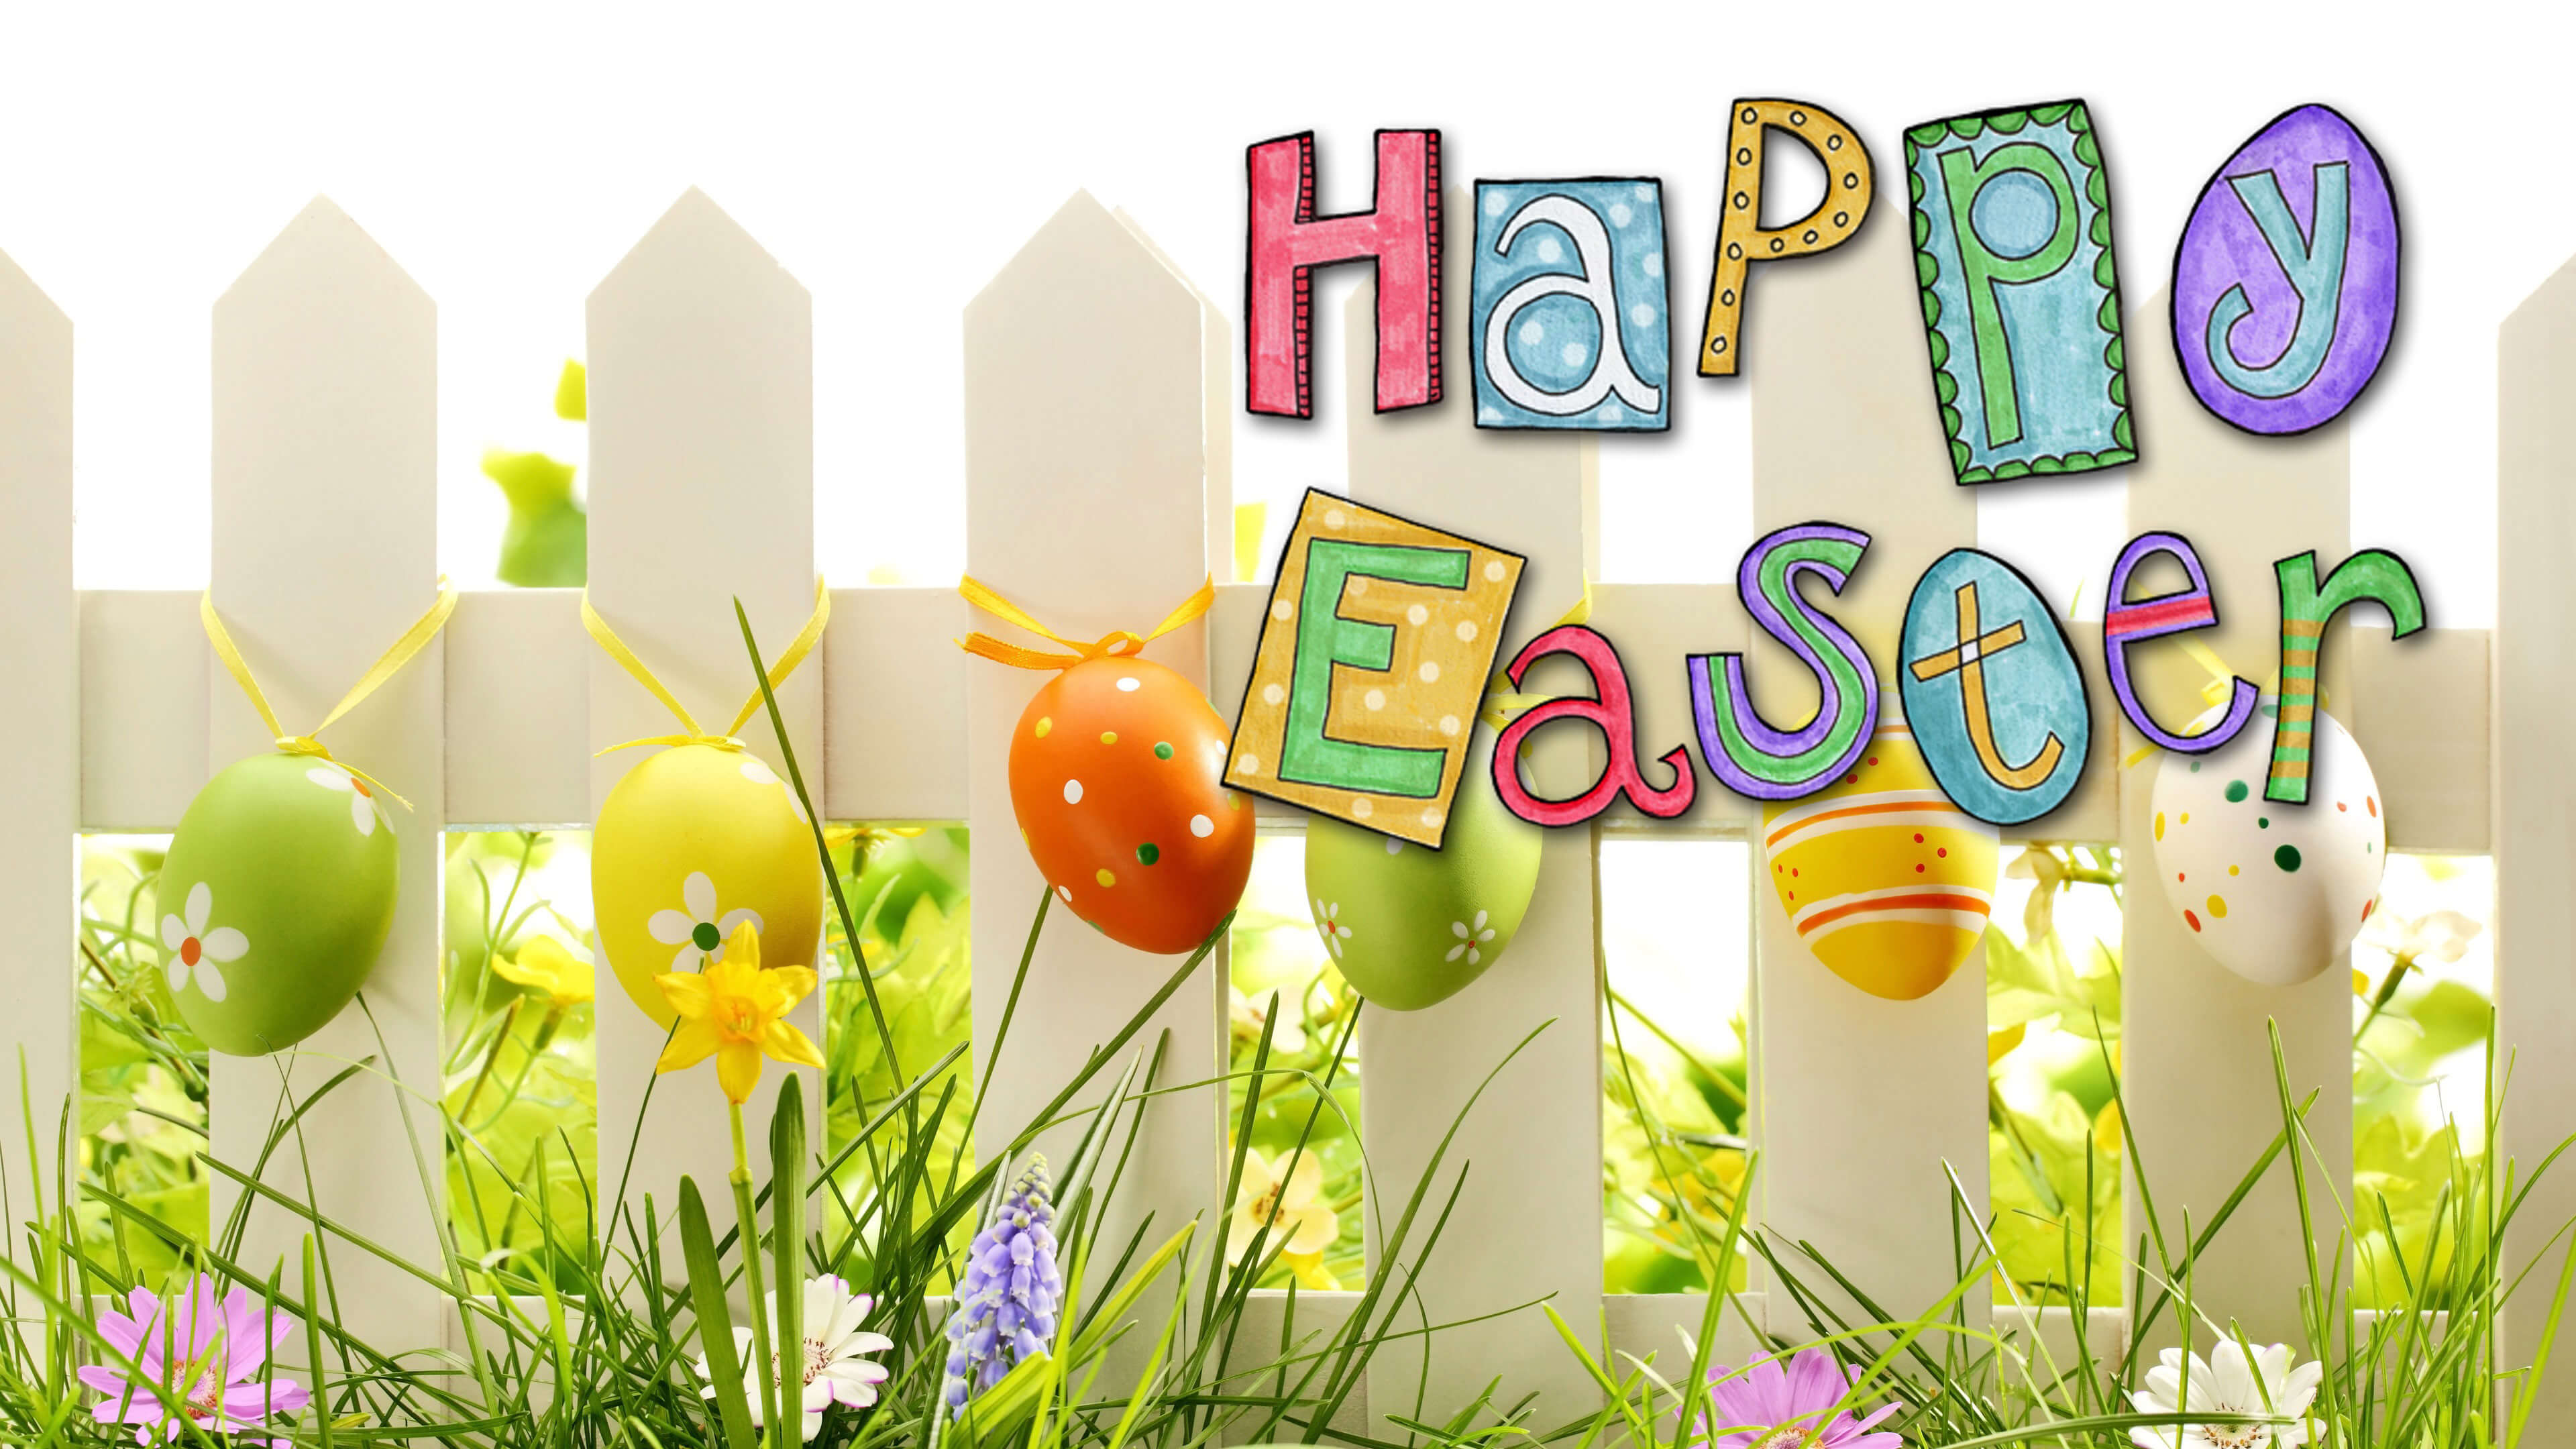 happy easter eggs grass flowers fence spring hd wallpaper